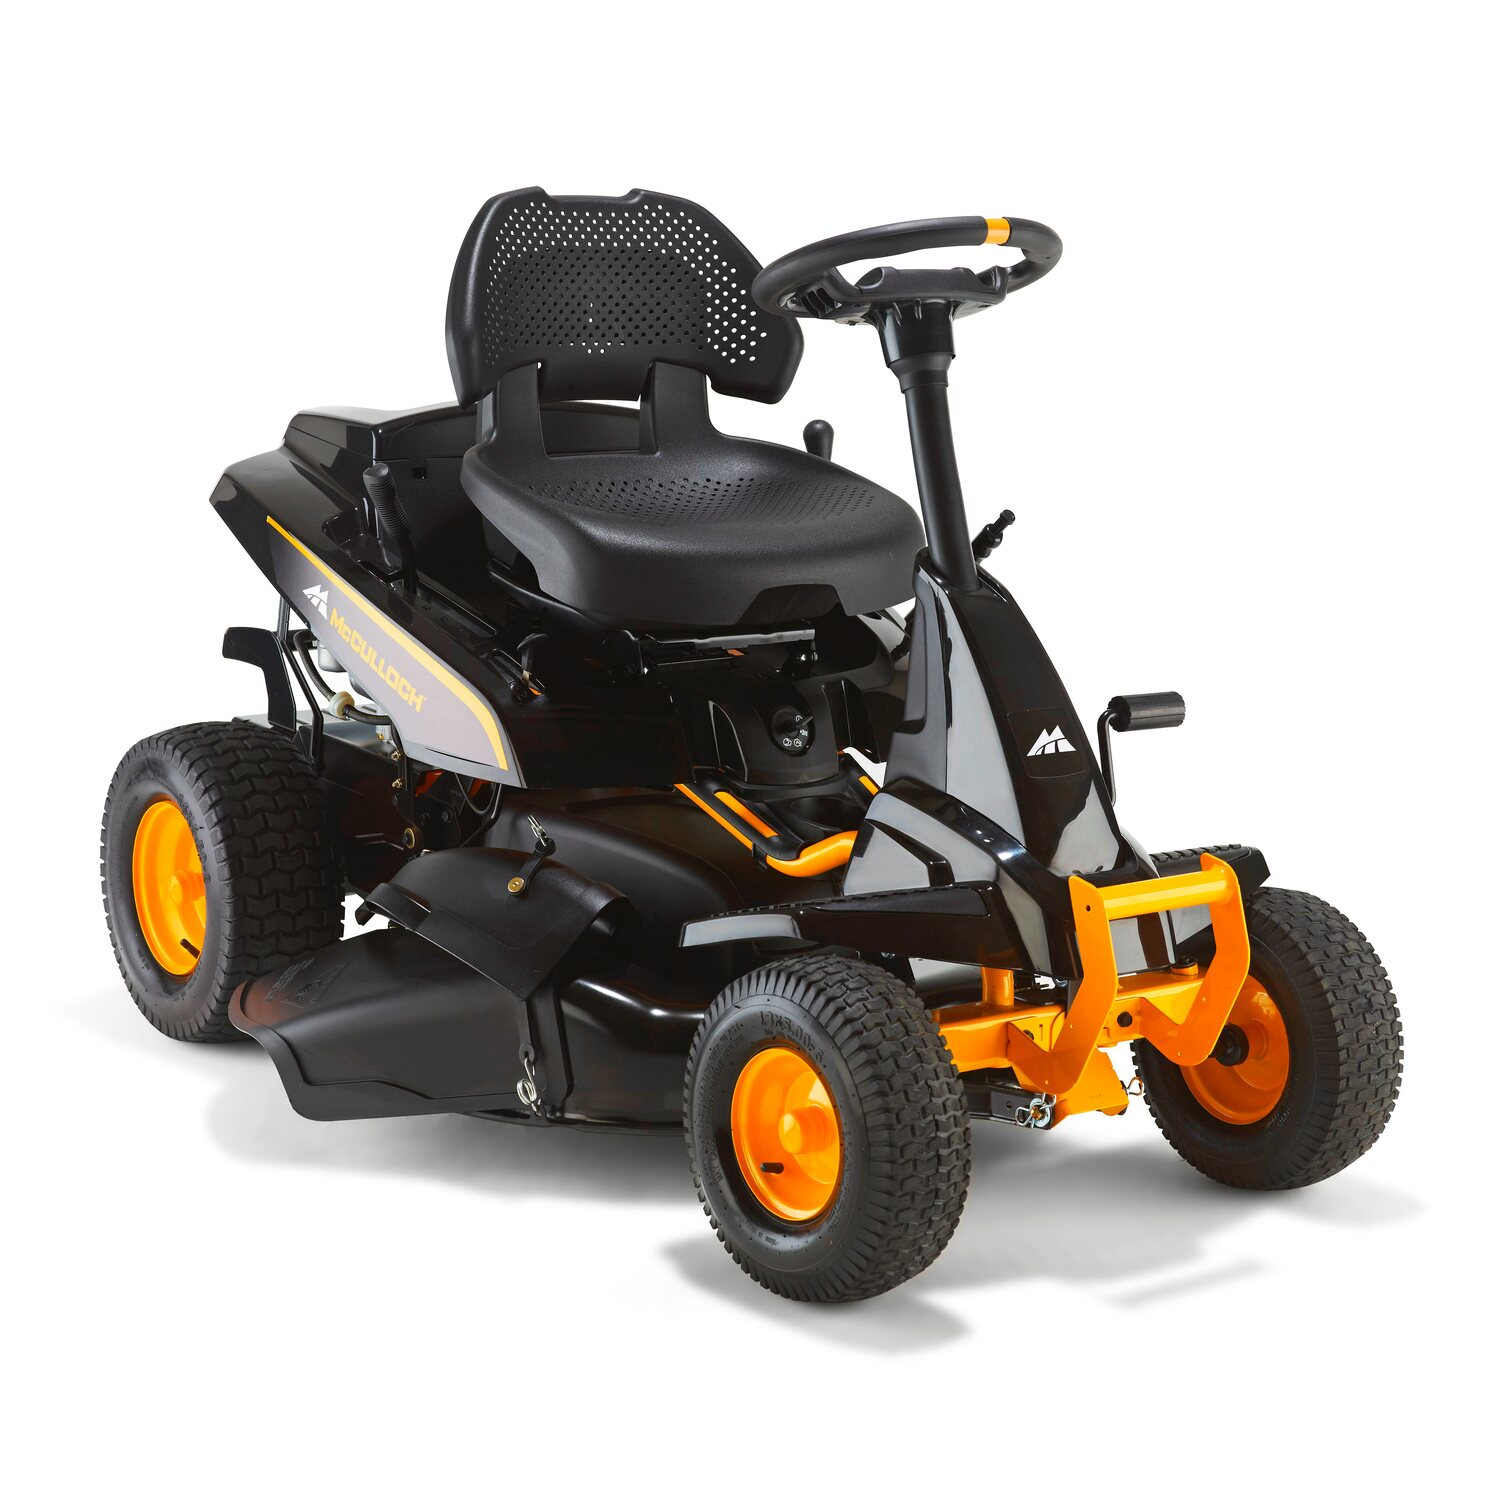 mcculloch f ny r traktor crossmower m105 77x 6 2 kw. Black Bedroom Furniture Sets. Home Design Ideas